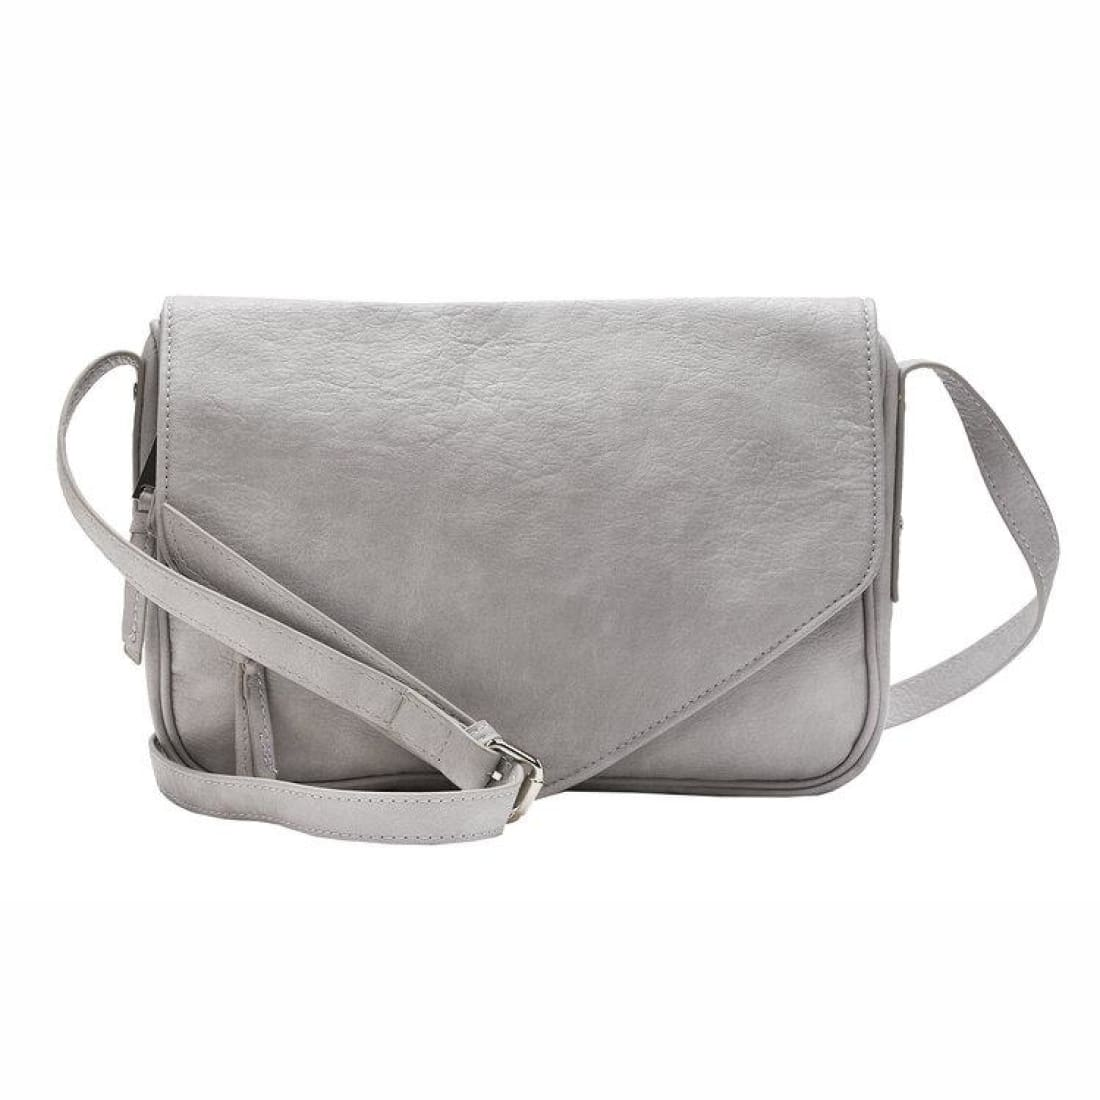 Co Lab Loft 2.0 Crossbody Bag Grey Purse